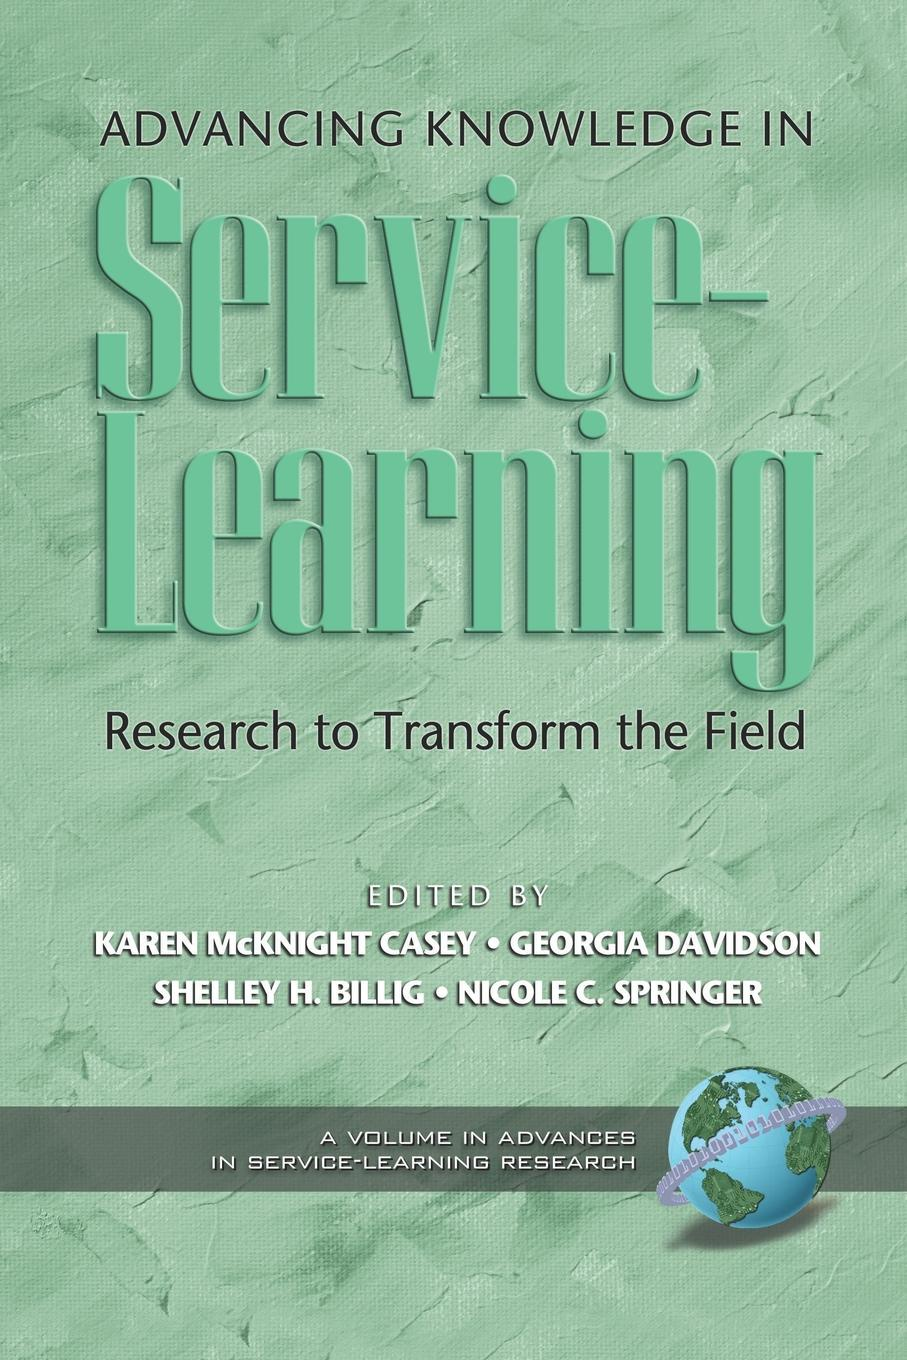 Advancing Knowledge in Service-Learning. Research to Transform the Field (PB) coleman cindy the designer s guide to doing research applying knowledge to inform design